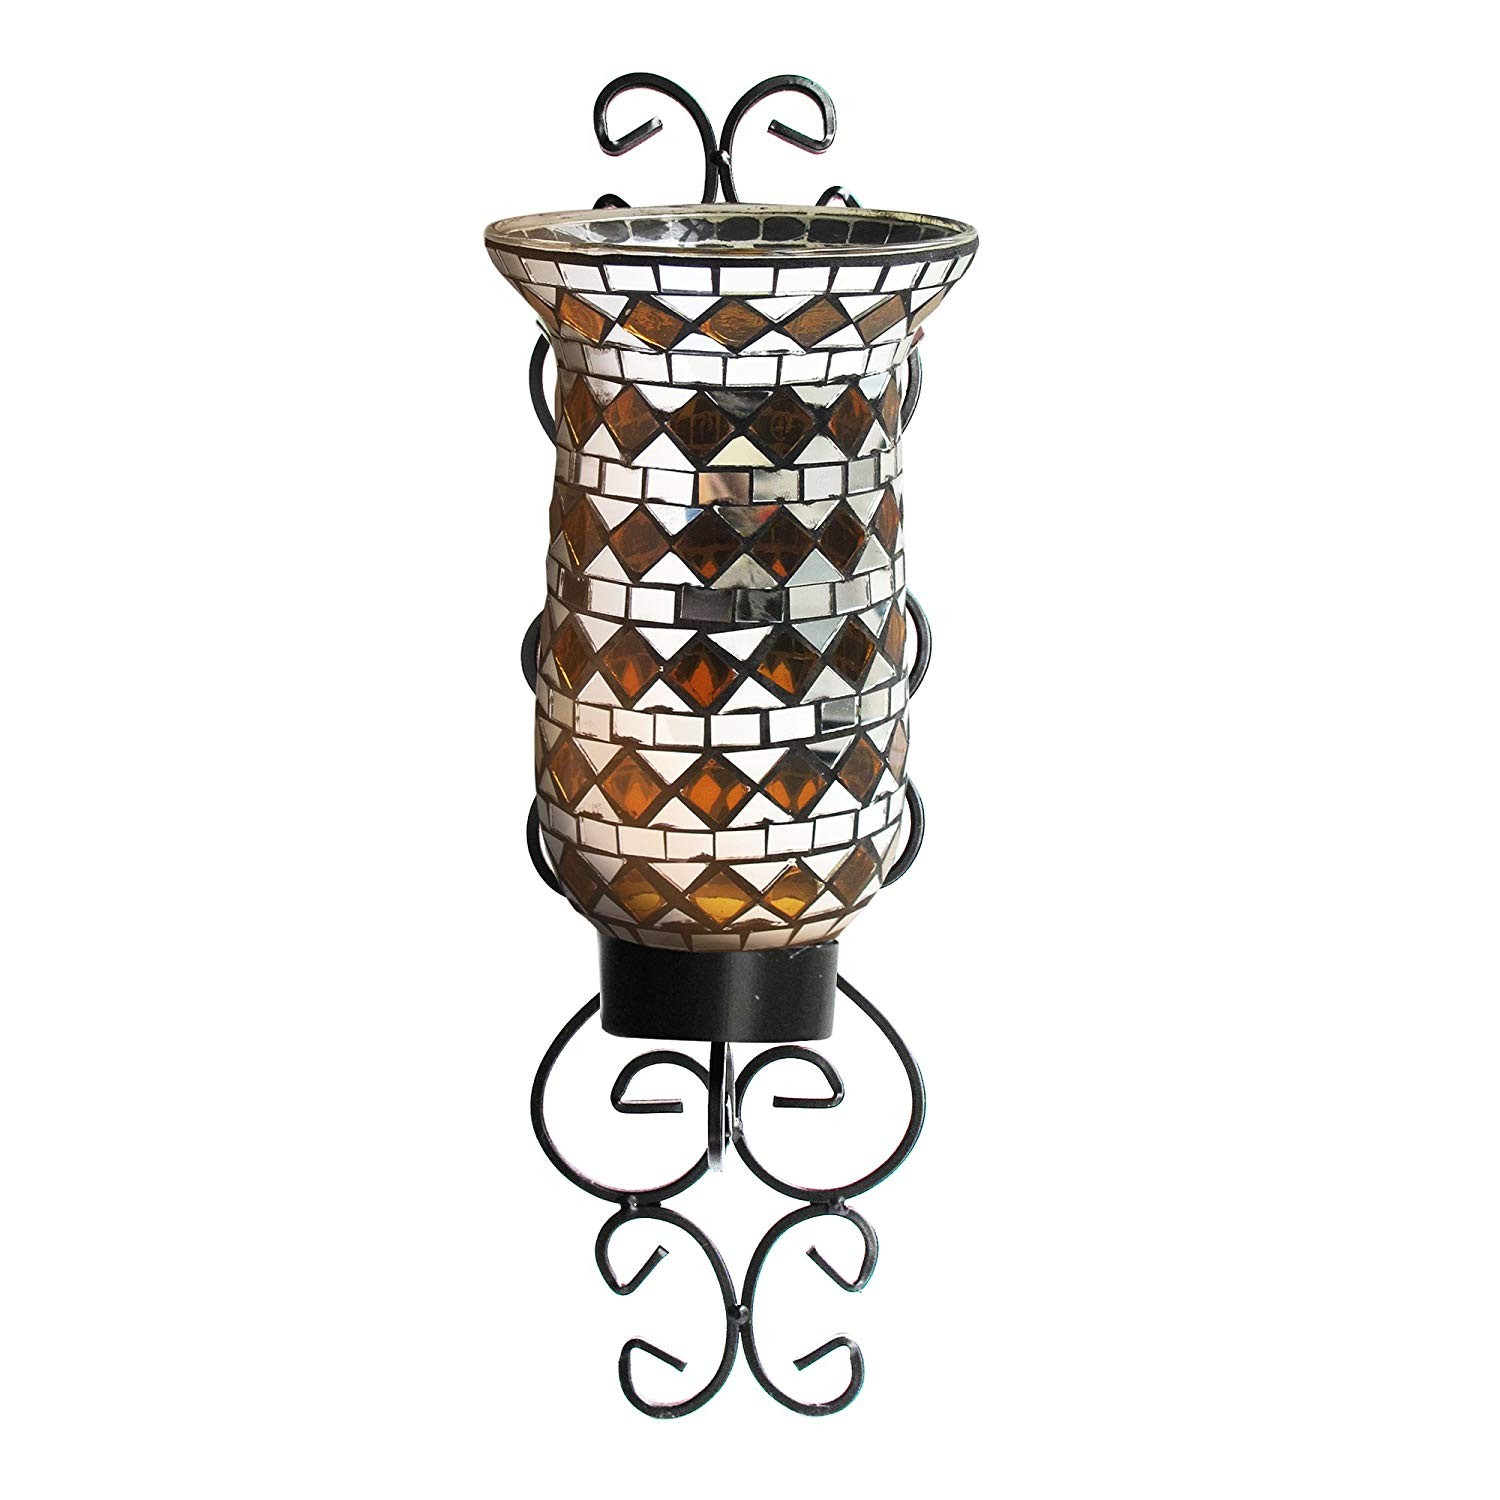 American Atelier 1330245 Mosaic Glass Wall Candle Sconce